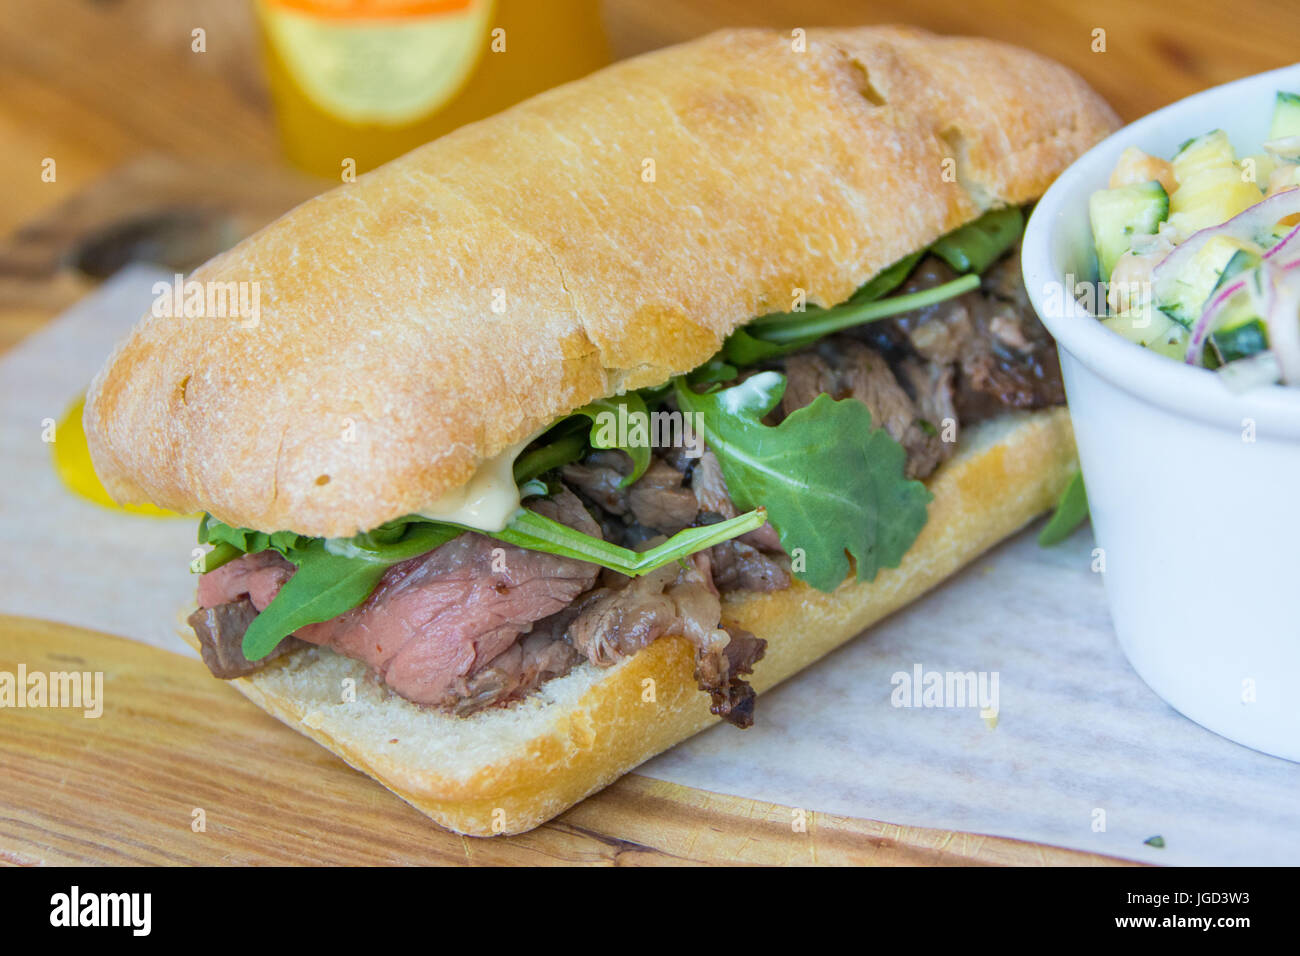 Prime rib, arugula, and garlic mayo sandwich, zucchini chickpea salad at Meat and Bread Restaurant, Gastown, Vancouver, - Stock Image